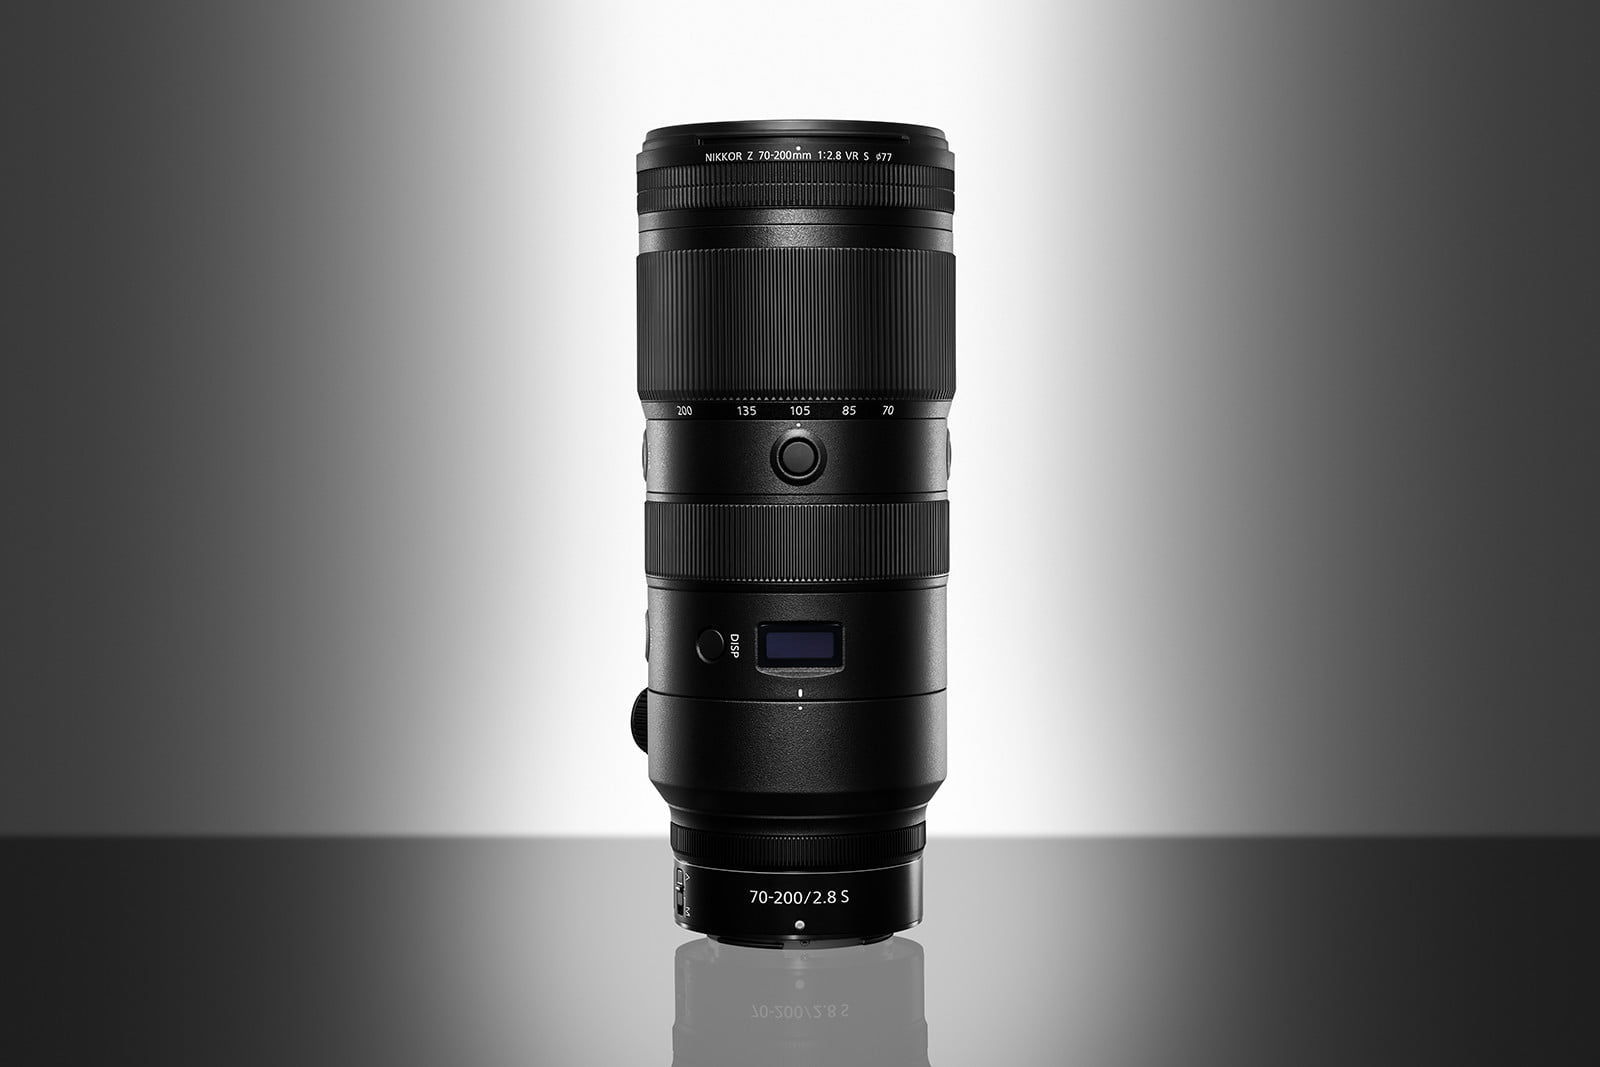 nikon nikkor 120 300mm z 70 200mm announced ces 2020 pbs z70 200 f2 8s